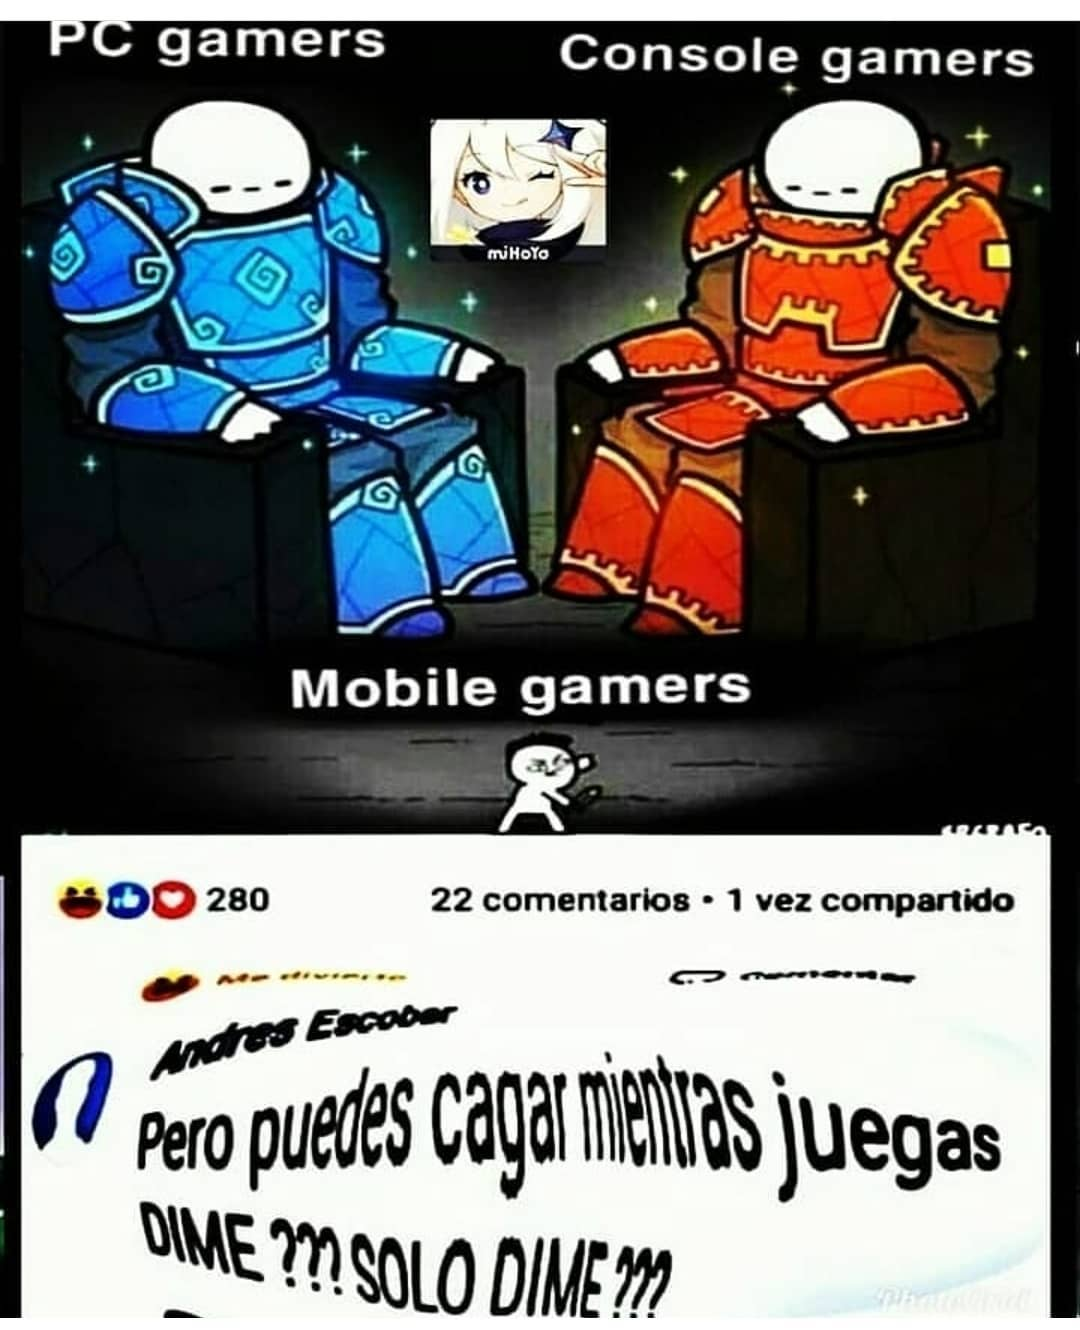 PC gamers. Console gamers. Mobile gamers.  Pero puedes cagar mientras juegas dime??? Solo dime???